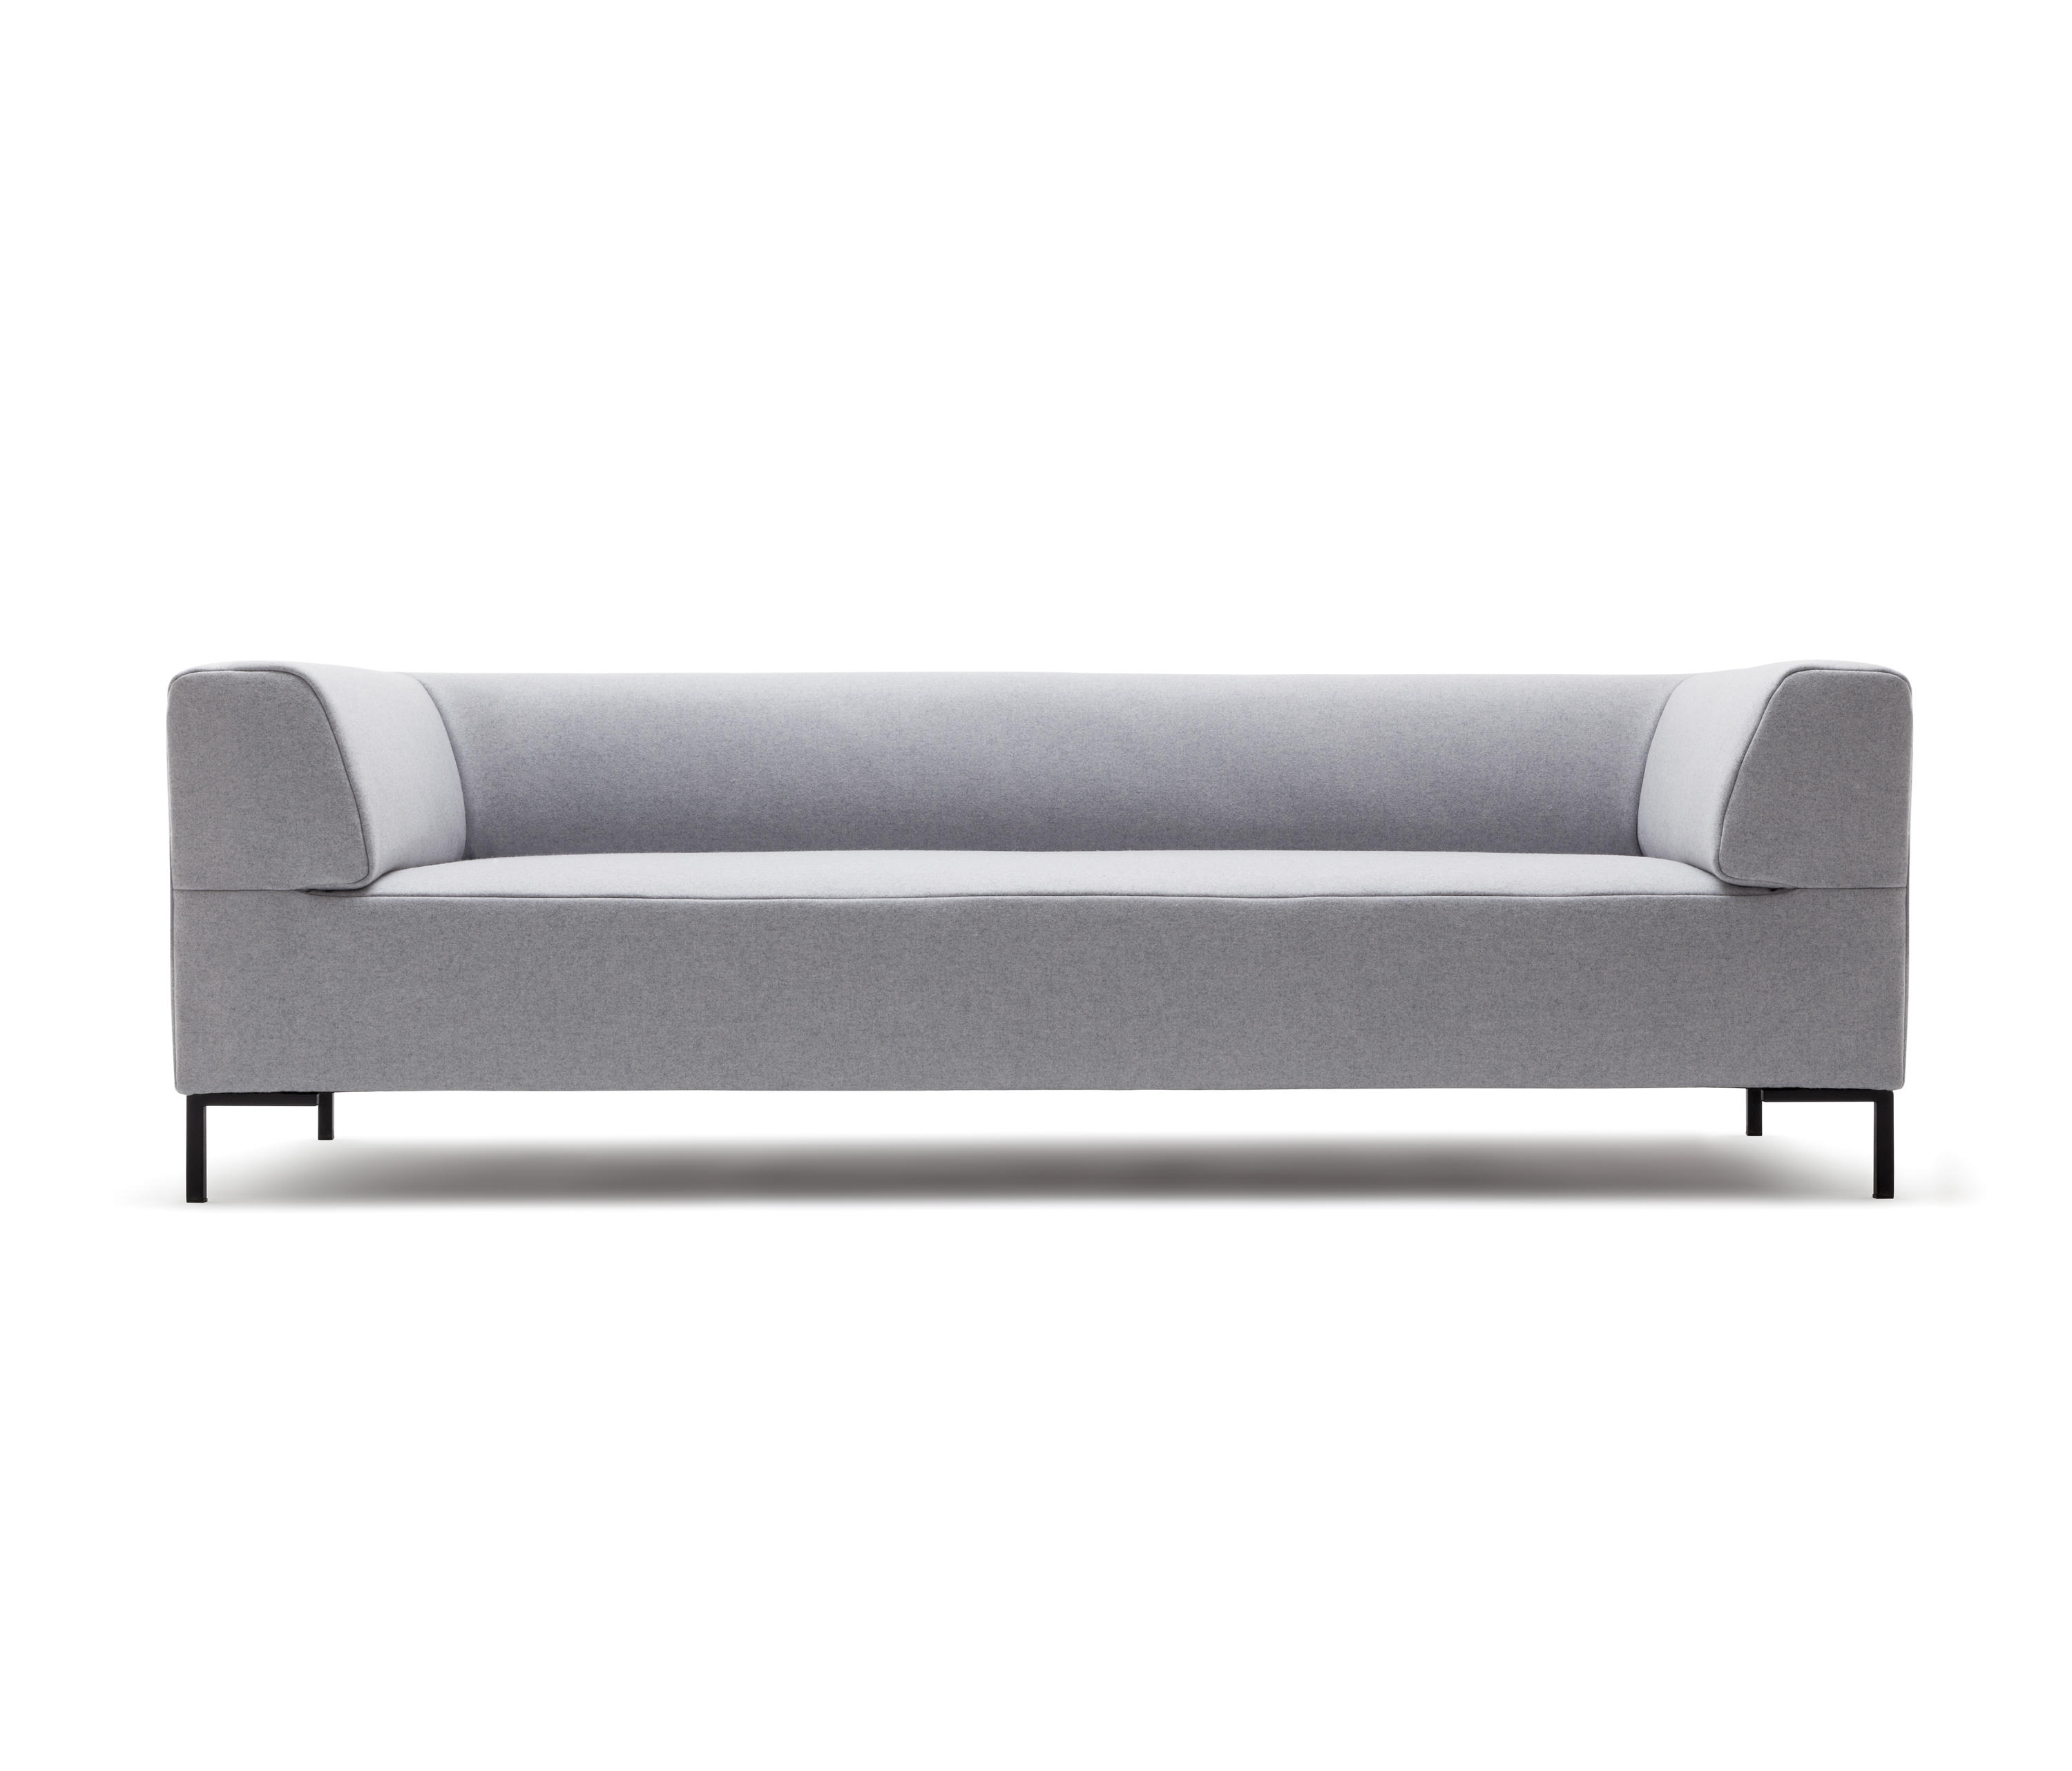 Freistil Sofa Freistil 185 - Sofas From Freistil | Architonic